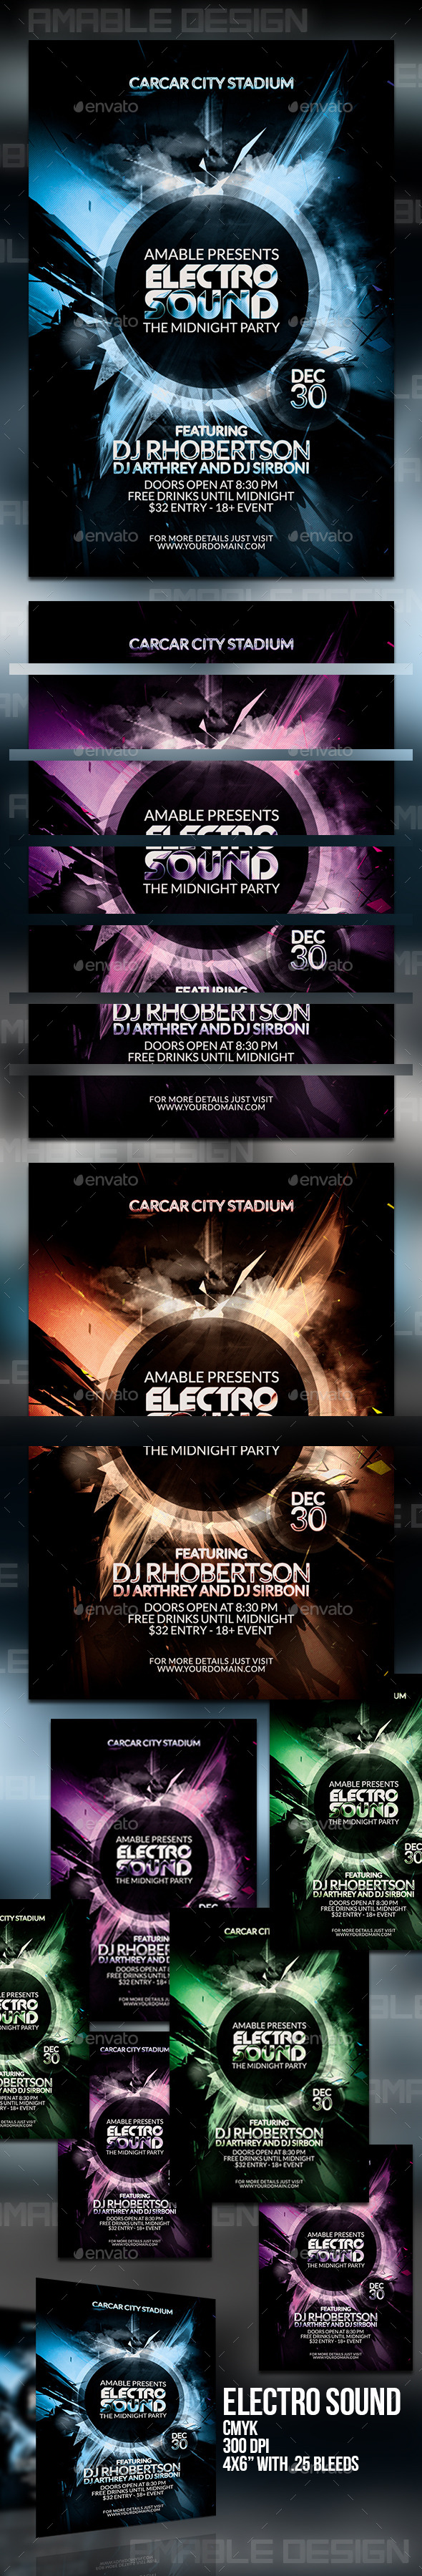 GraphicRiver Electro Sound Flyer 9870740